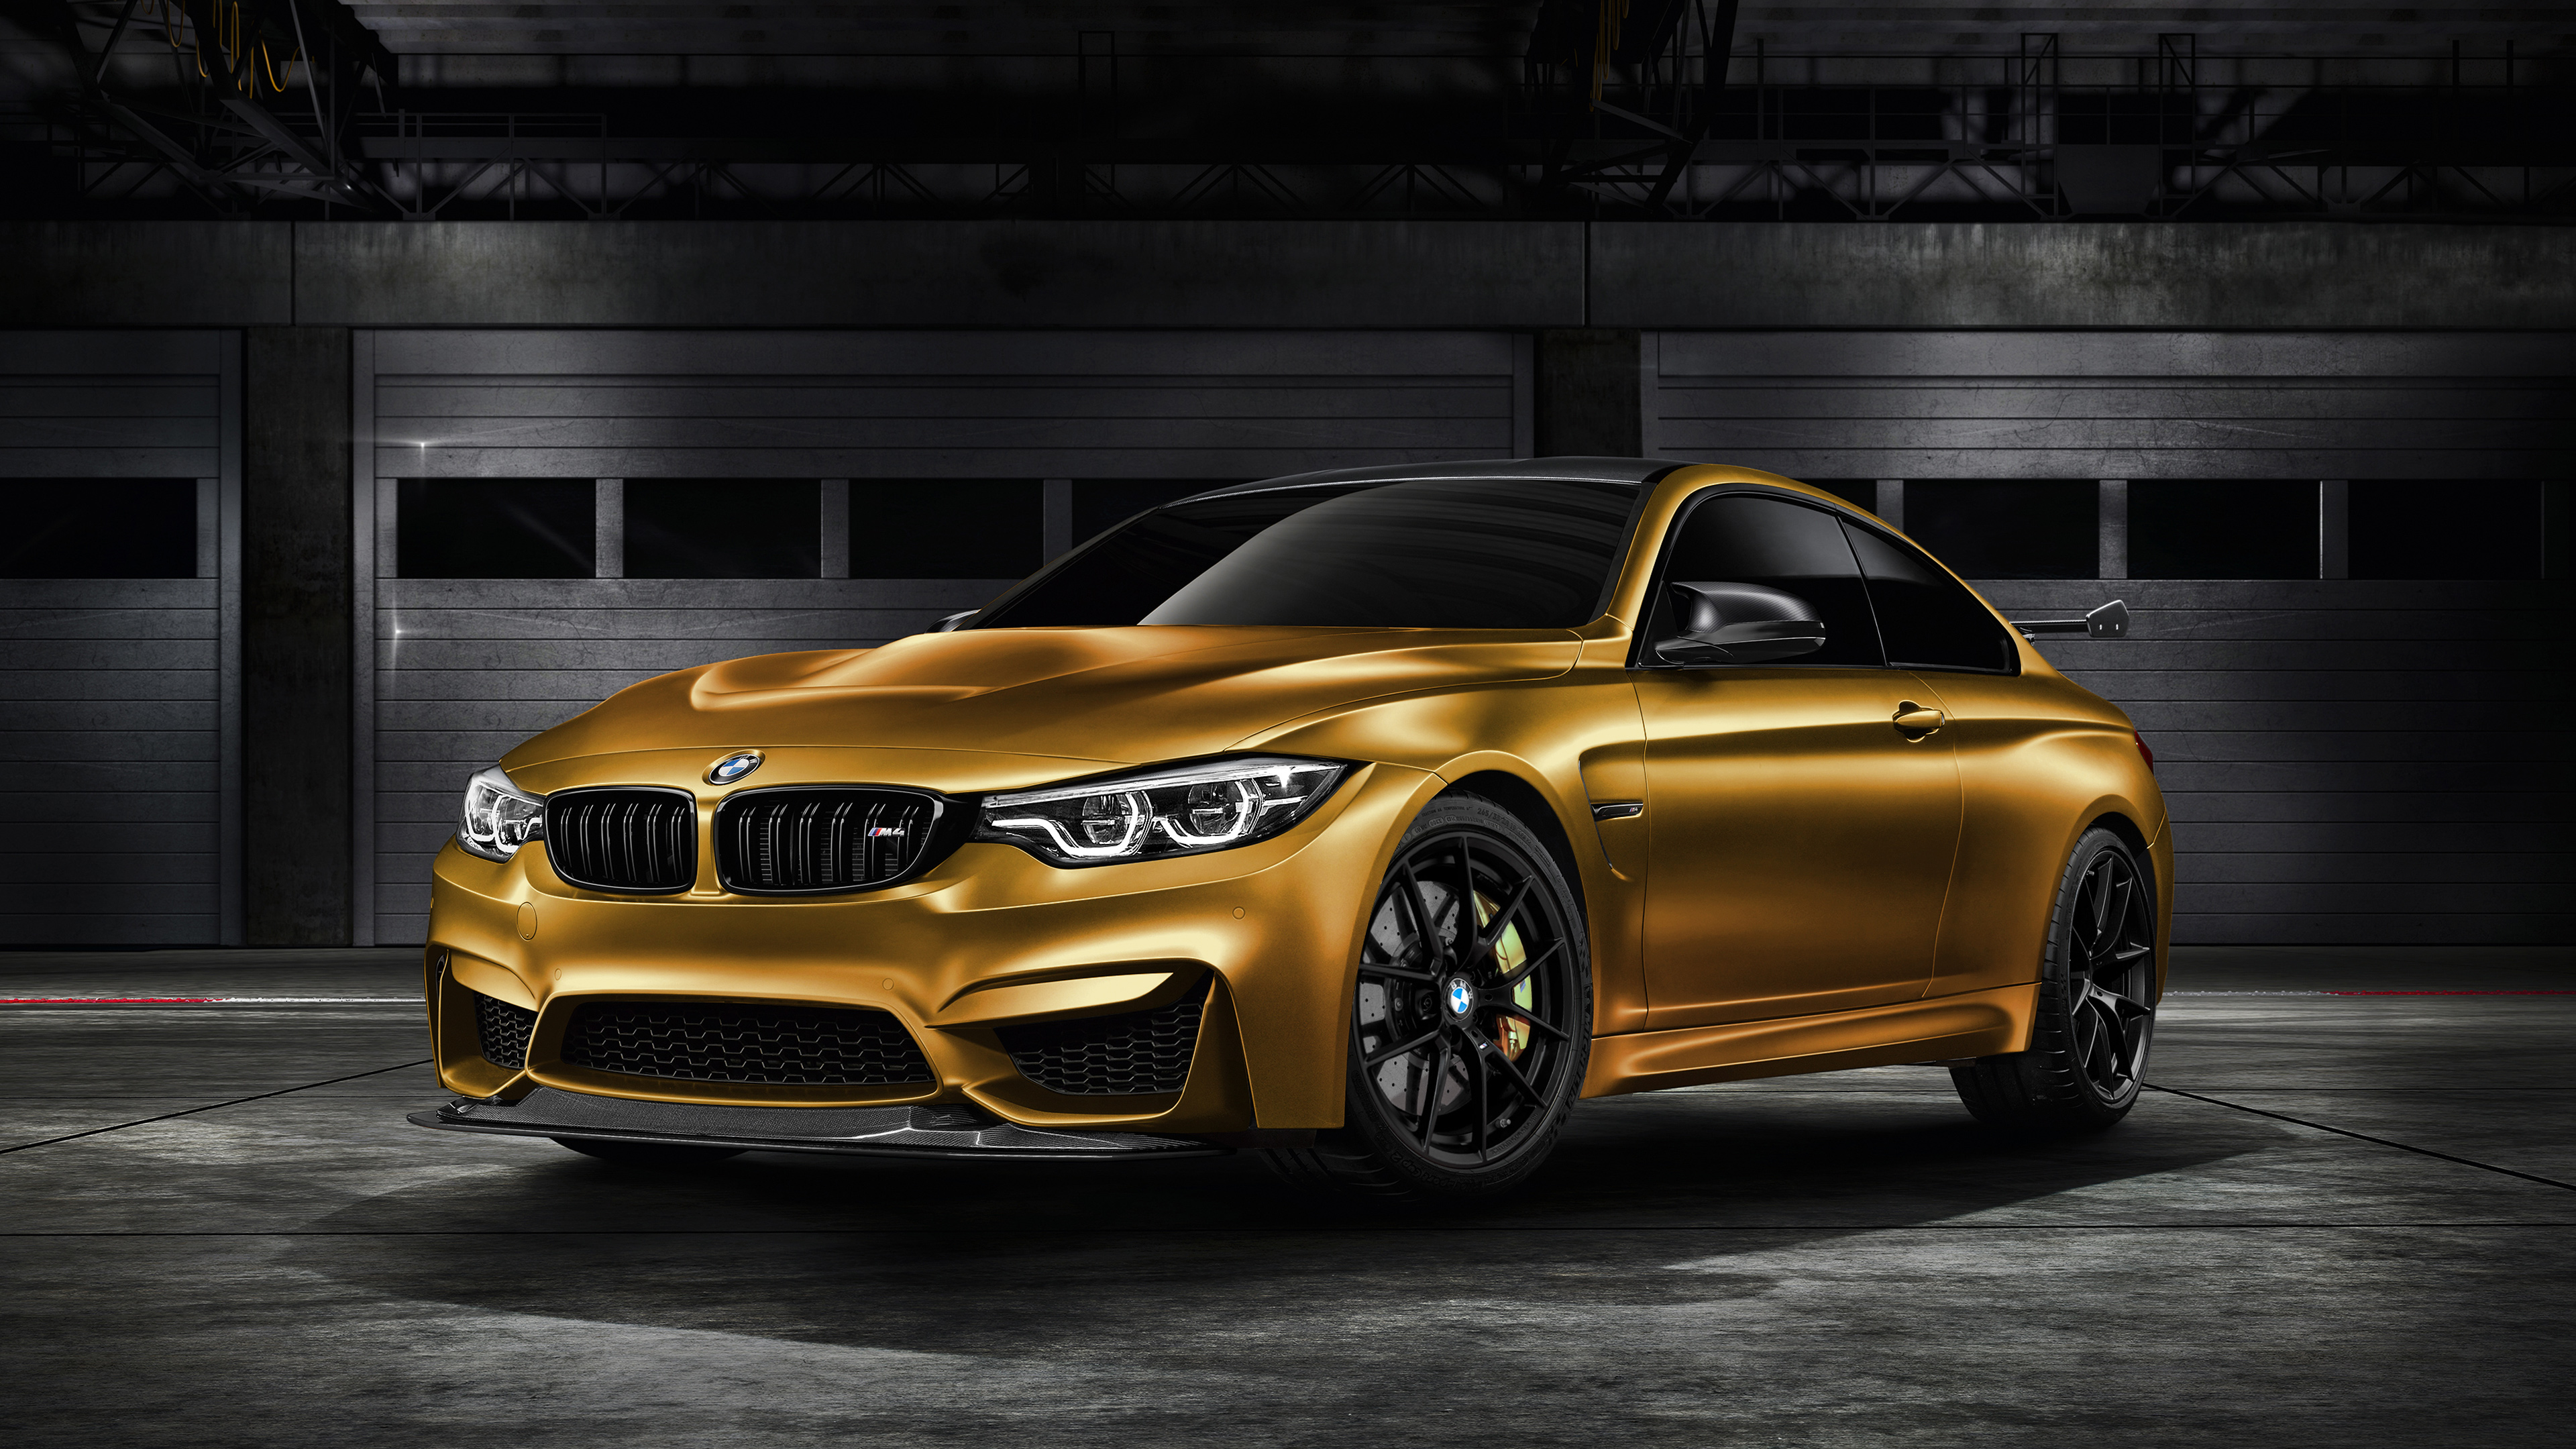 2018 Bmw M4 Gts Sunburstgold 4k Wallpaper Hd Car Wallpapers Id 8078